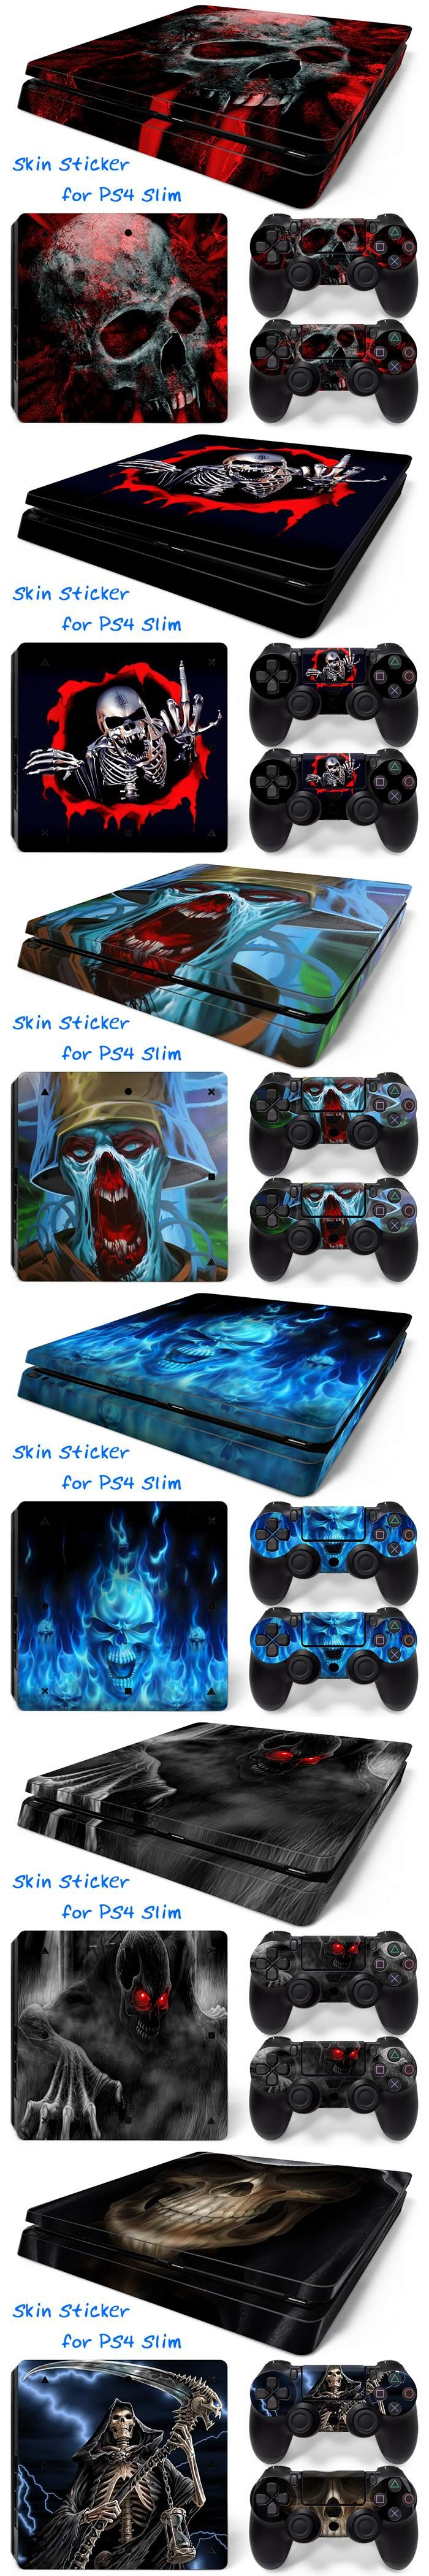 Blue Fire Skull PVC Decals Cover Vinyl Skins Stickers for PS4 Slim for Playstation 4 Slim